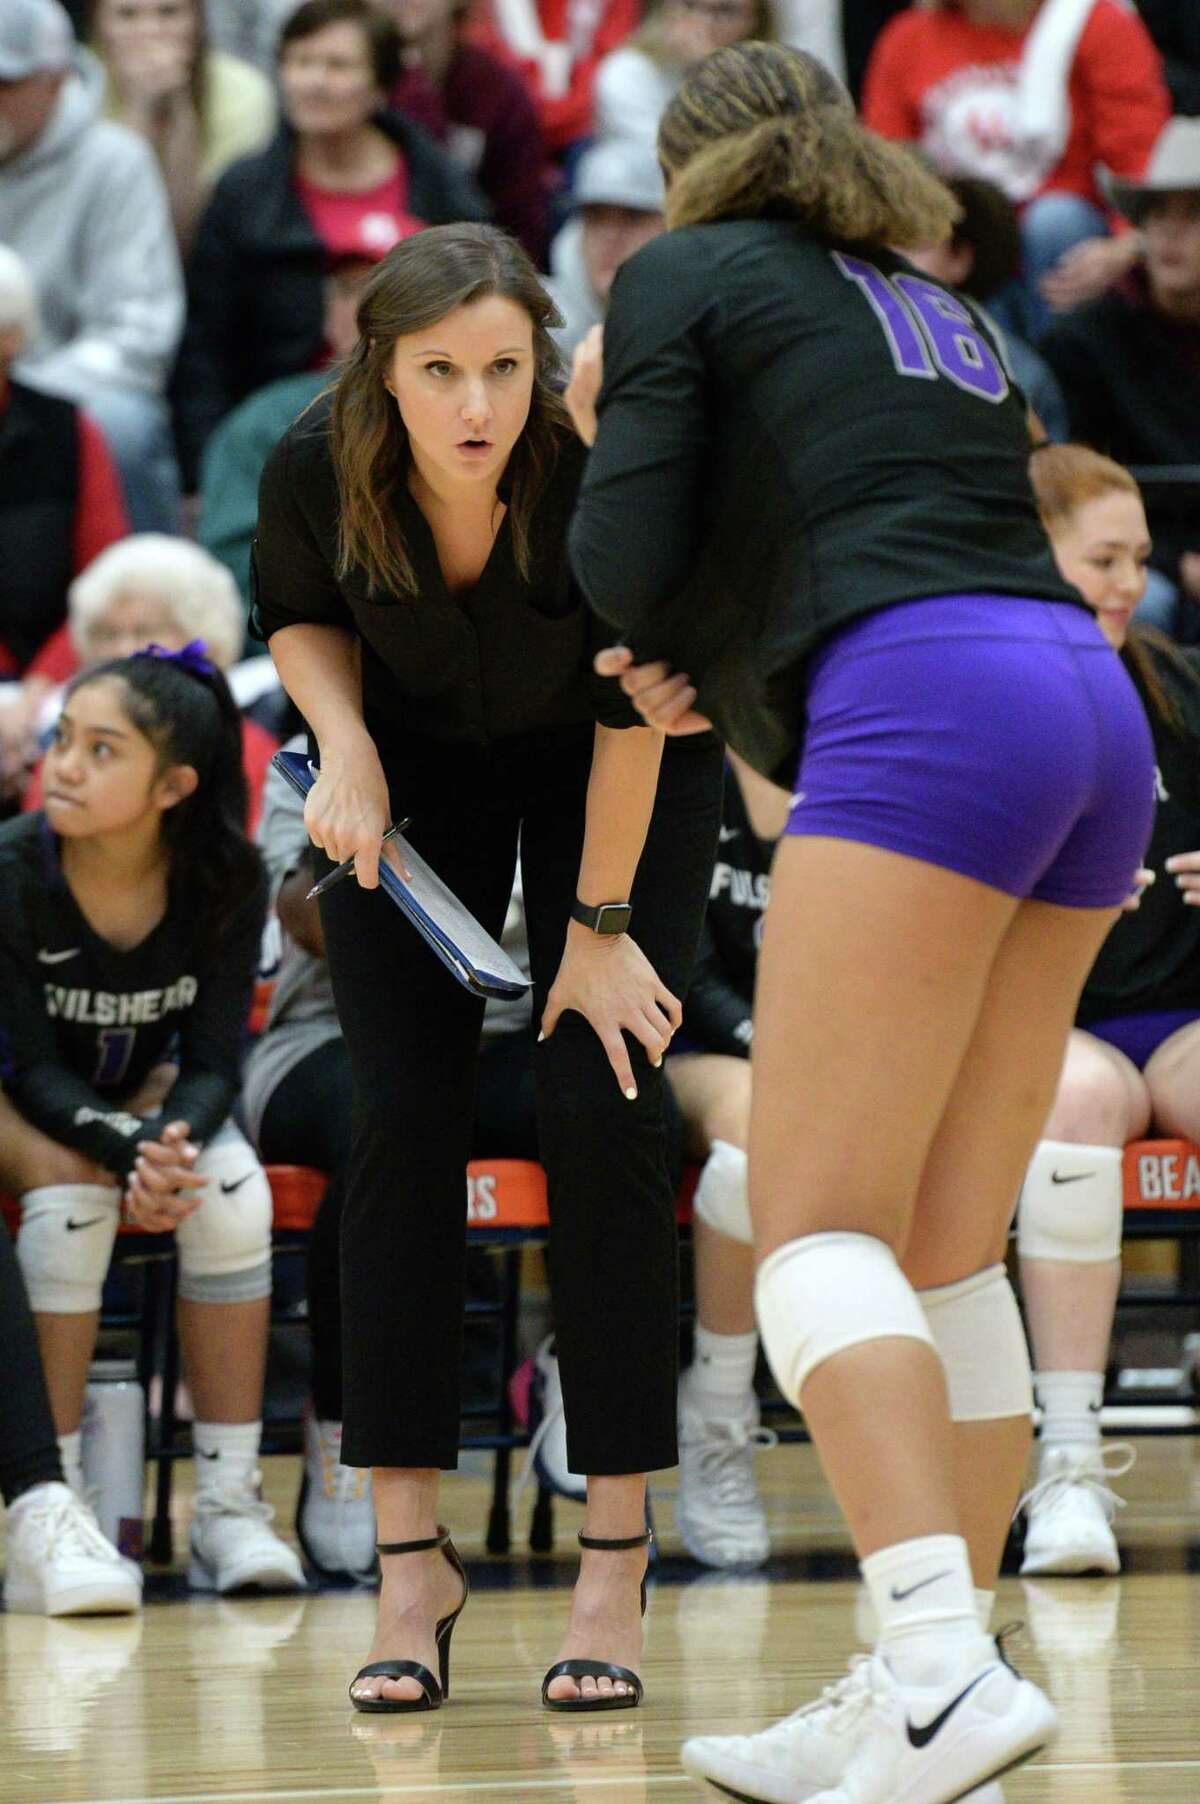 Head Coach Sydney Gotcher of Fulshear talks to a player during the first set of a Class 4A Region IV Quarterfinal volleyball playoff match between the Fulshear Chargers and the Bellville Brahamanettes on Tuesday, November 12, 2019 at Bridgeland HS, Cypress, TX.